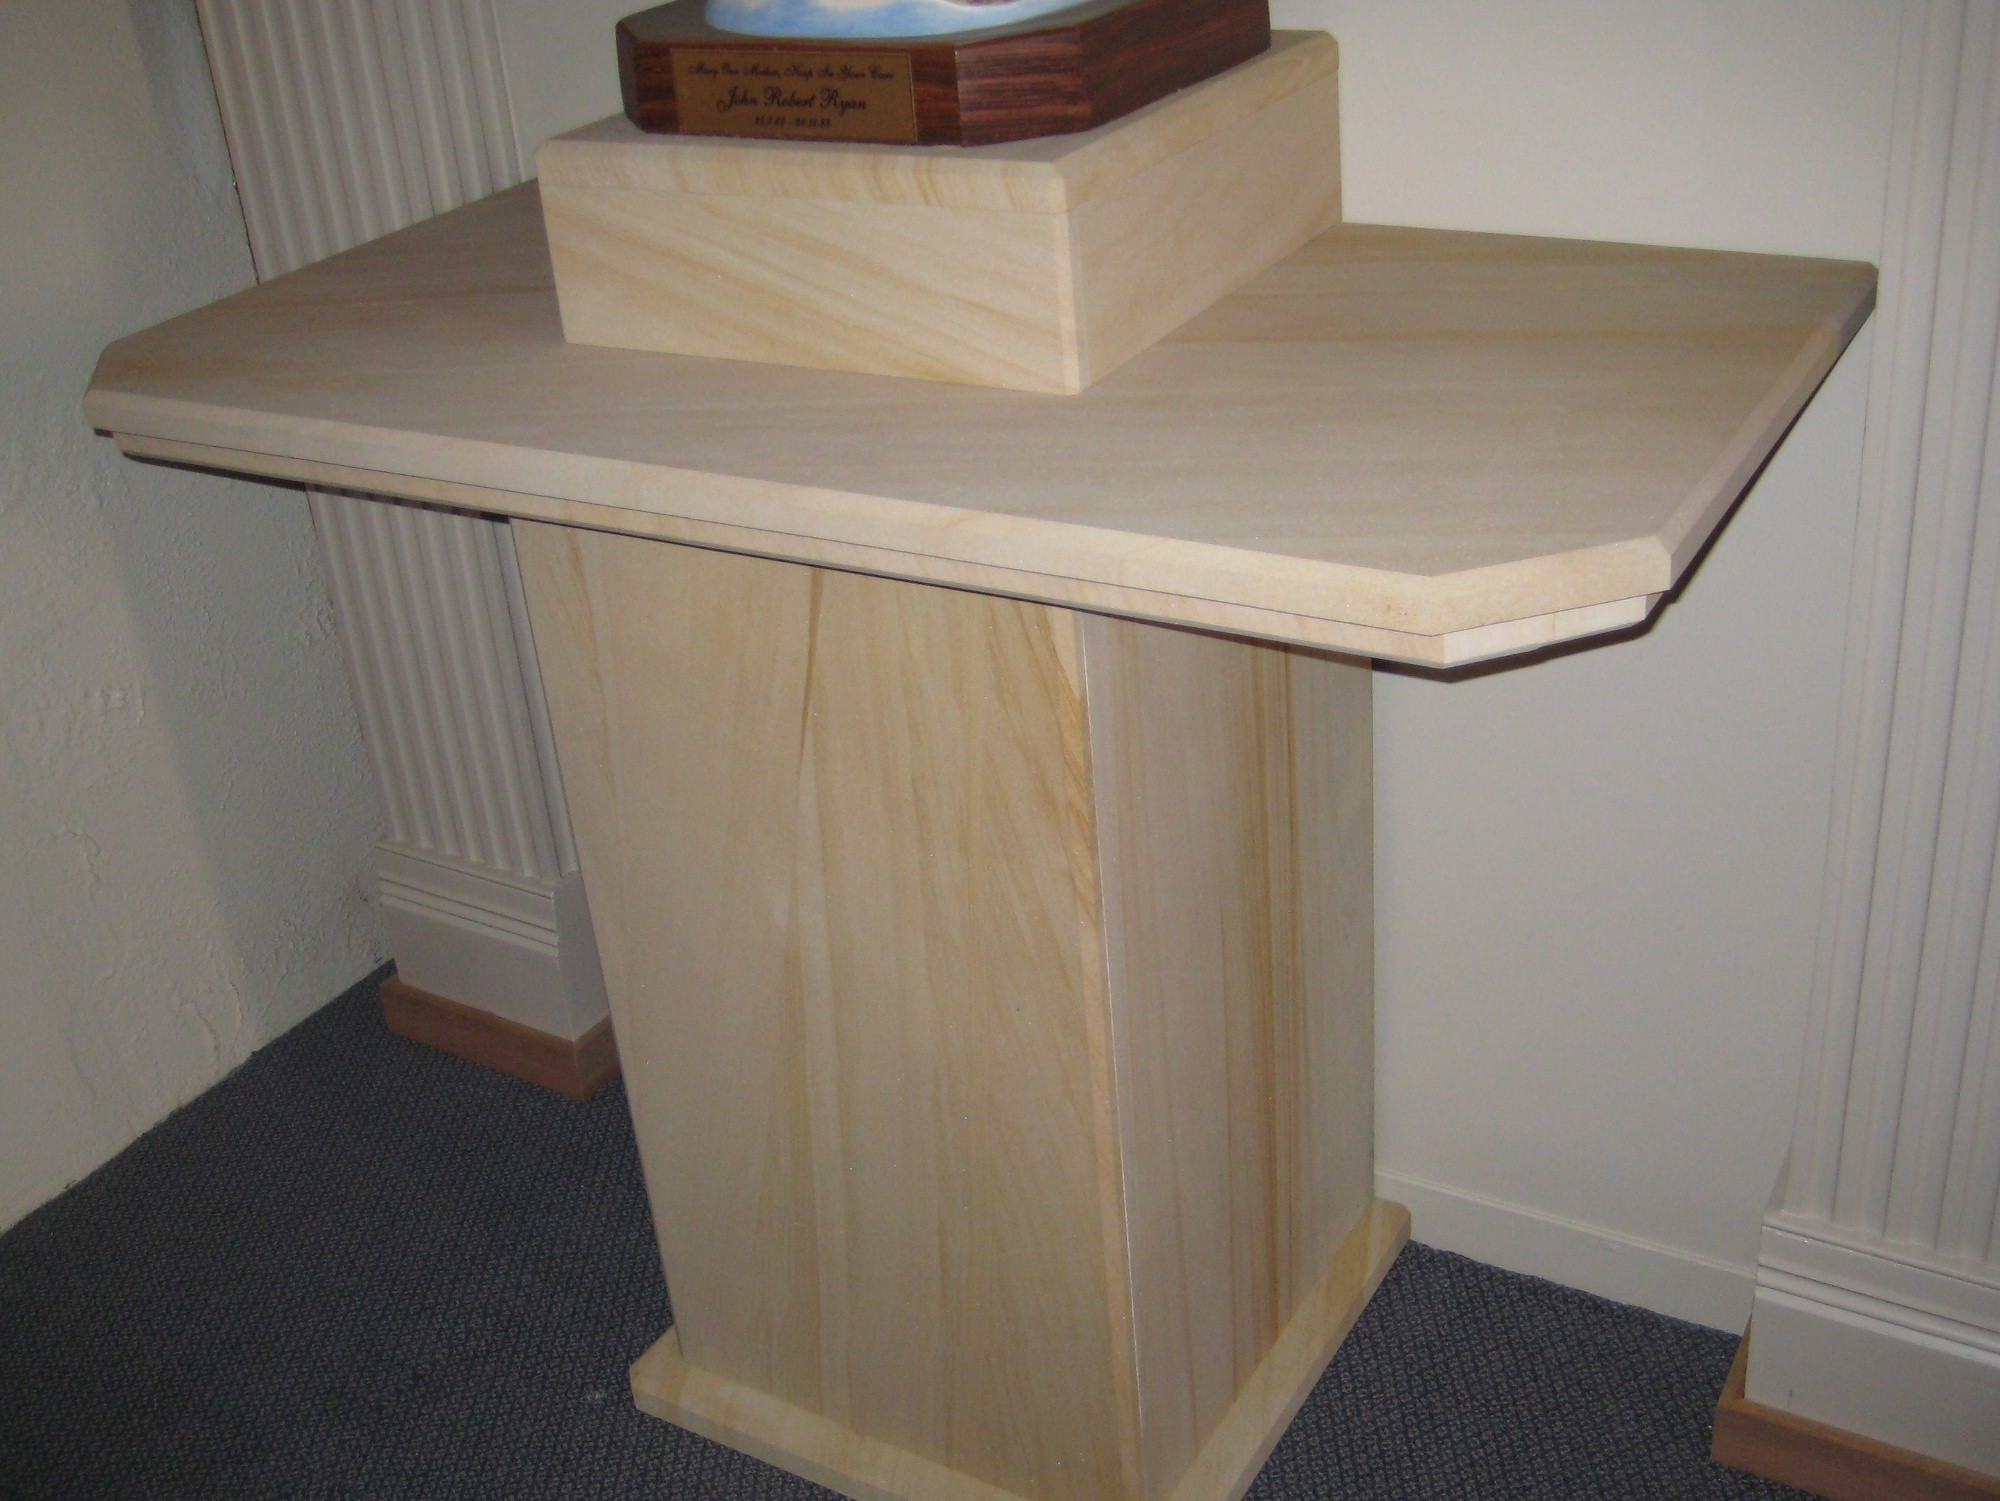 34. Woodgrain sandstone pedestal for churche. We make furniture to order.